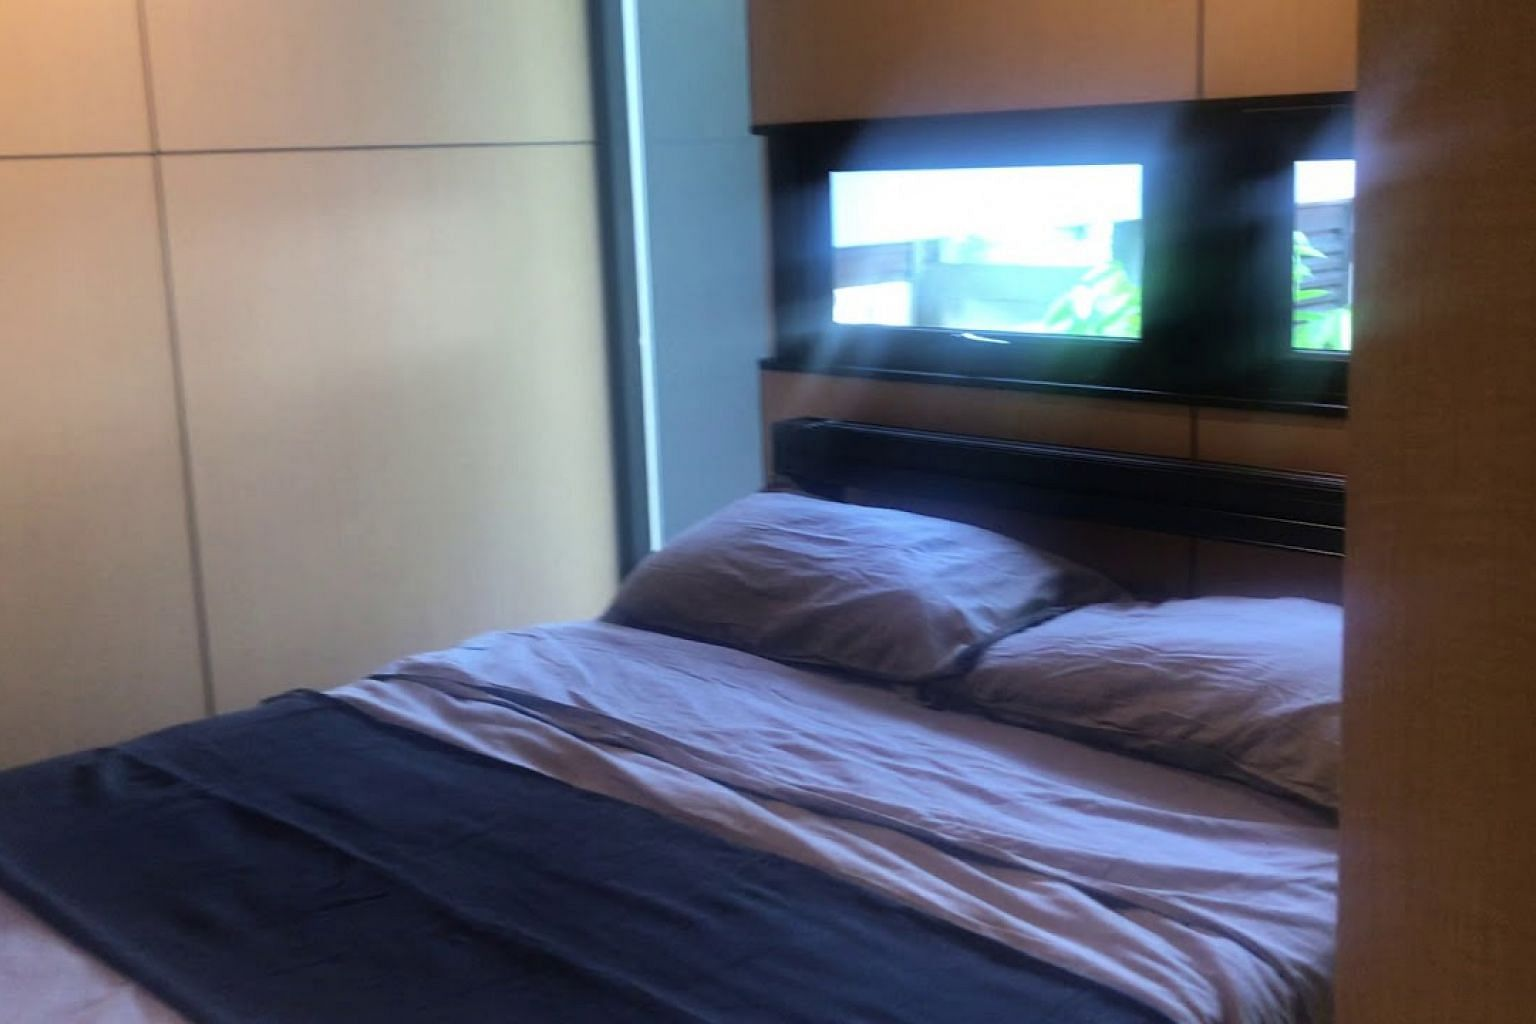 The interior of a fully furnished Movit home